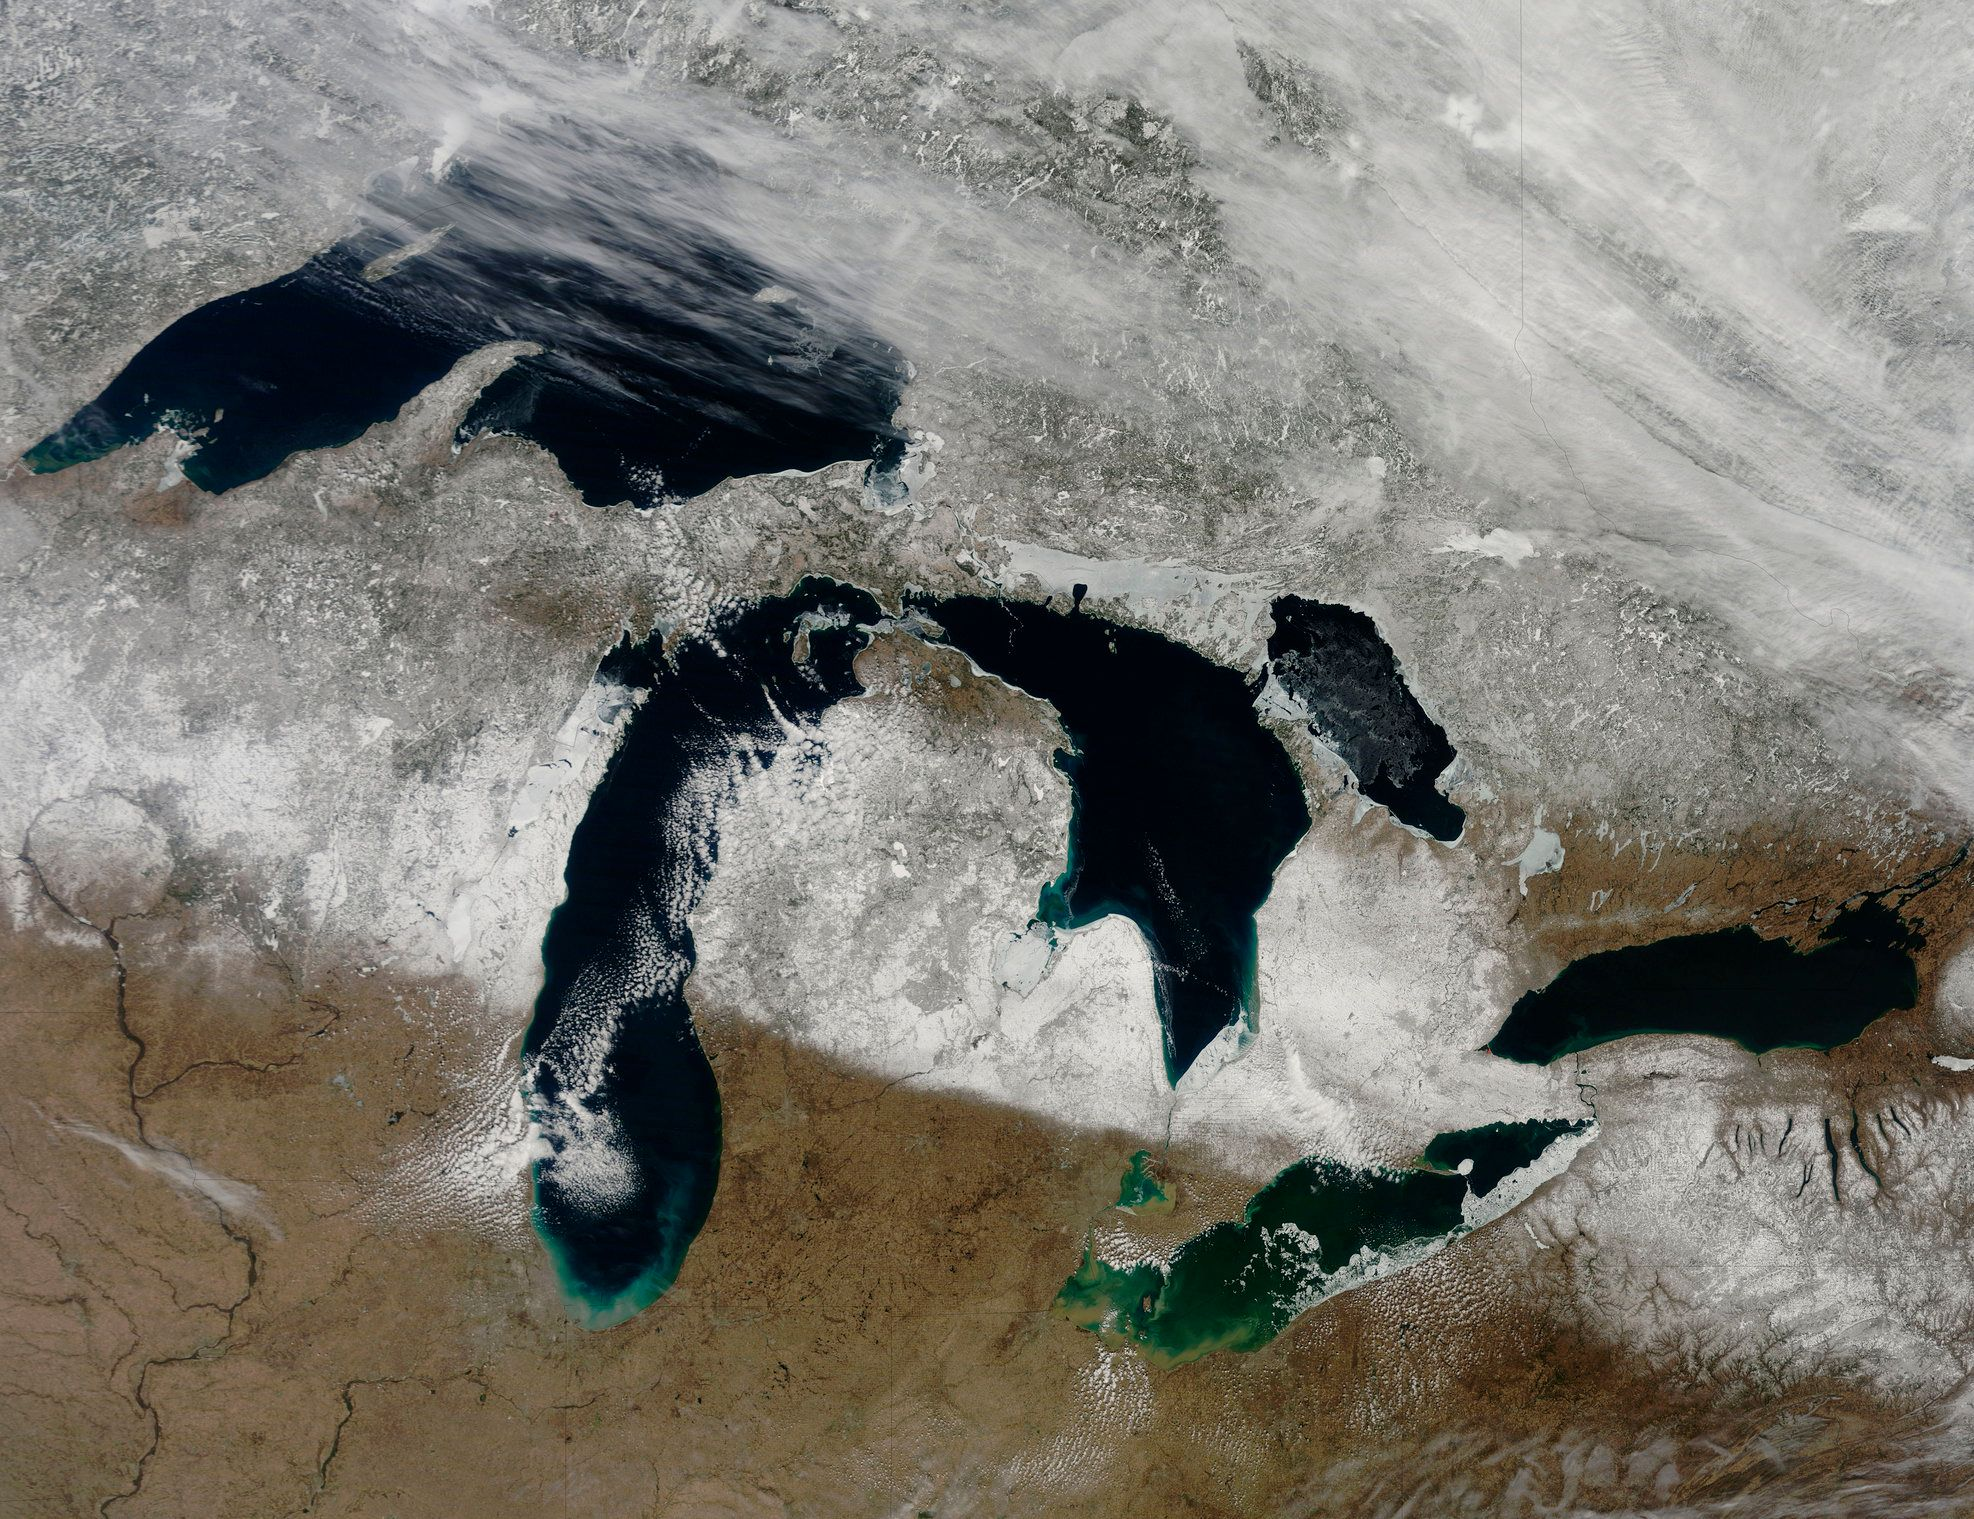 March 28, 2011 - The bright white remnants of snow cut a clean swath across Wisconsin and Michigan during springtime snowmelt. Snow depth in most of the snow-covered swath ranged from 4 inches to 20 inches on the day this image was captured.